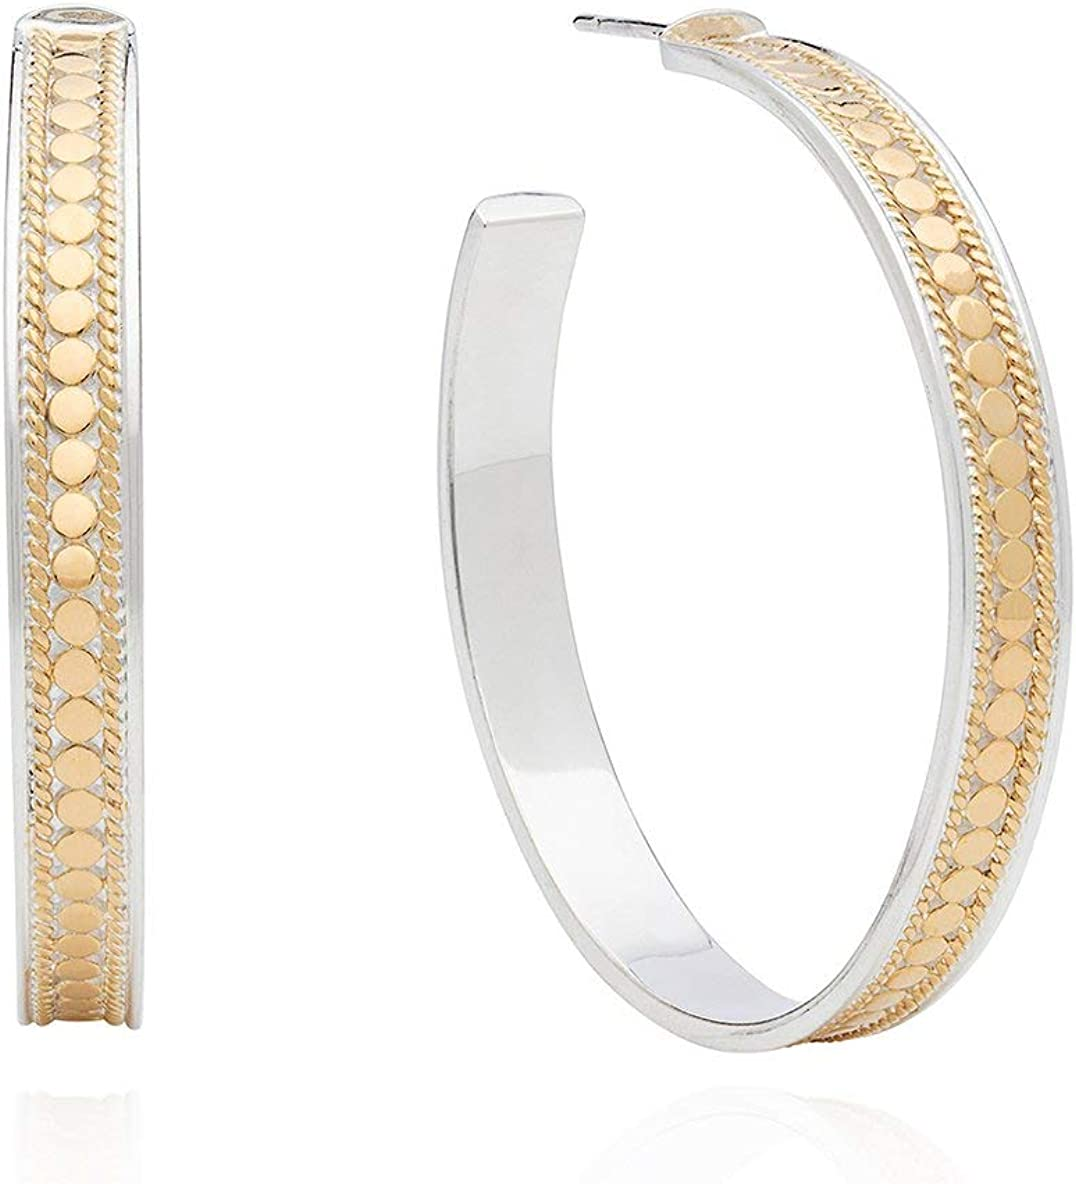 Anna Beck Earrings ~ Solid Sterling Silver Jewelry ~ Classics Collection ~ Bali Jewelry for Women ~ Large Hoop Post Earrings (Sterling Silver & Yellow Gold-Plating) 61NNLFDeIBLUL1184_